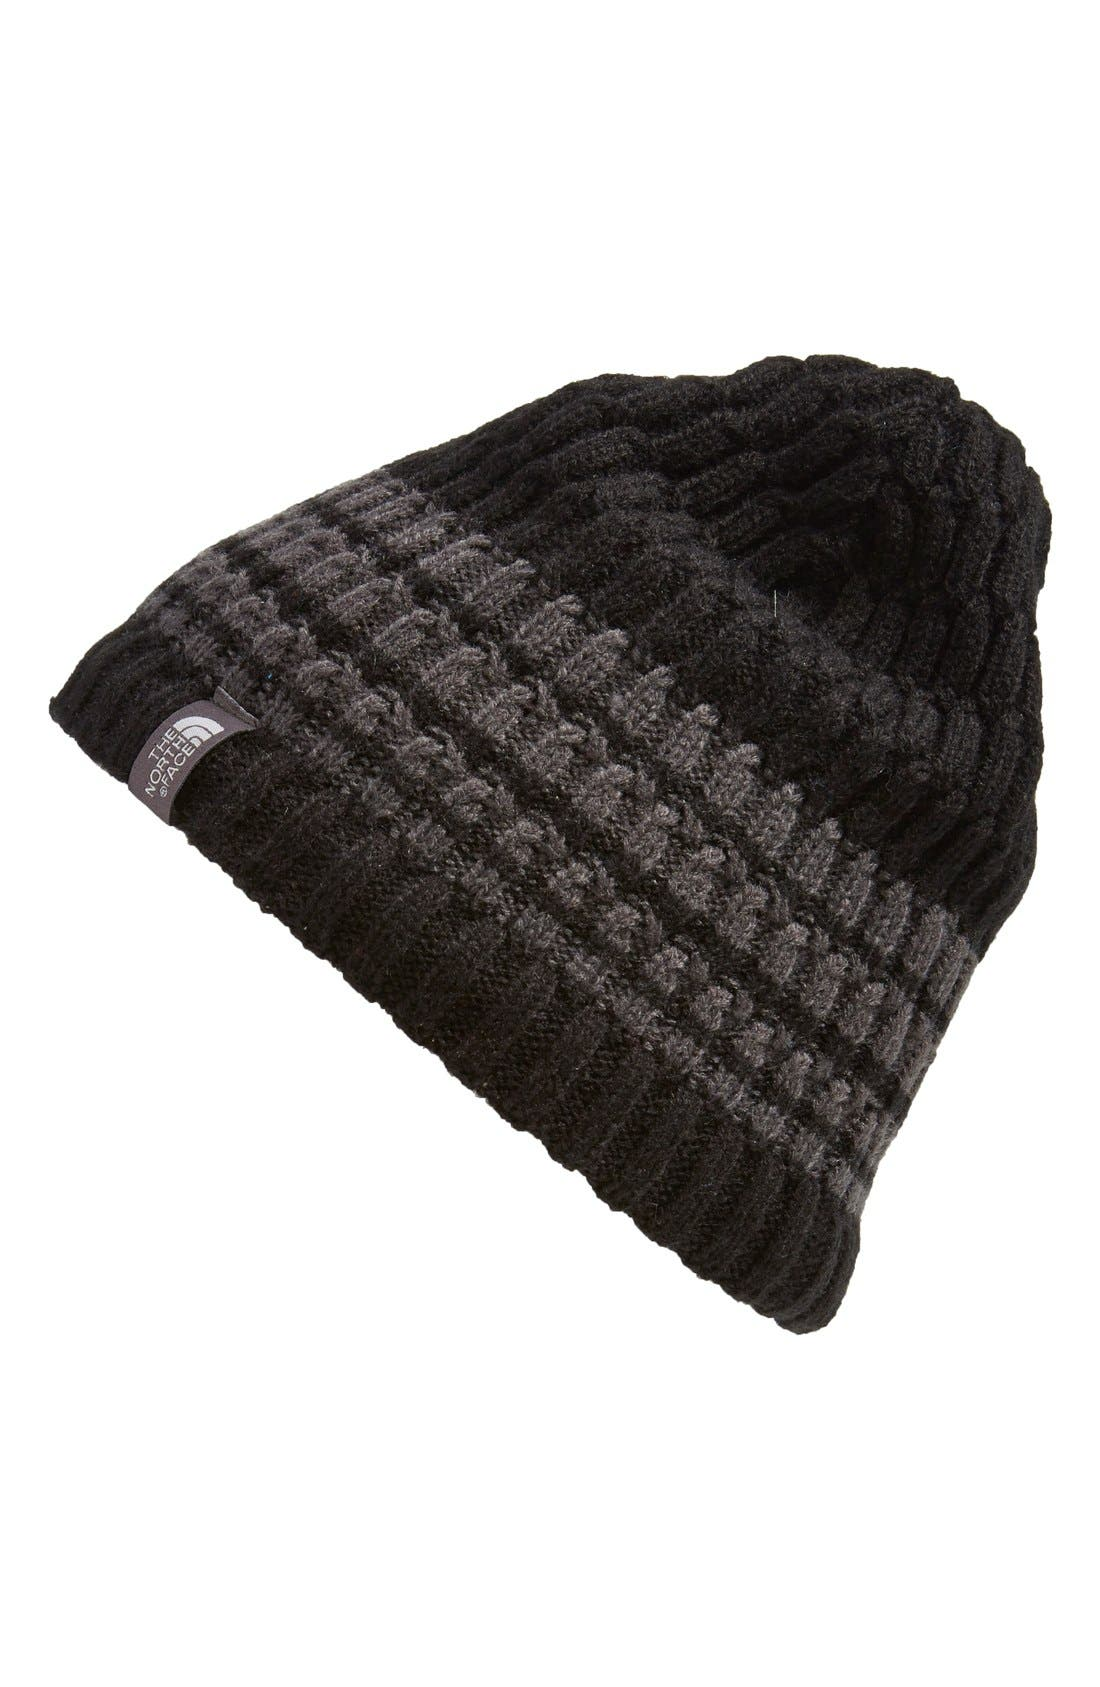 Main Image - The North Face 'The Blues' Beanie